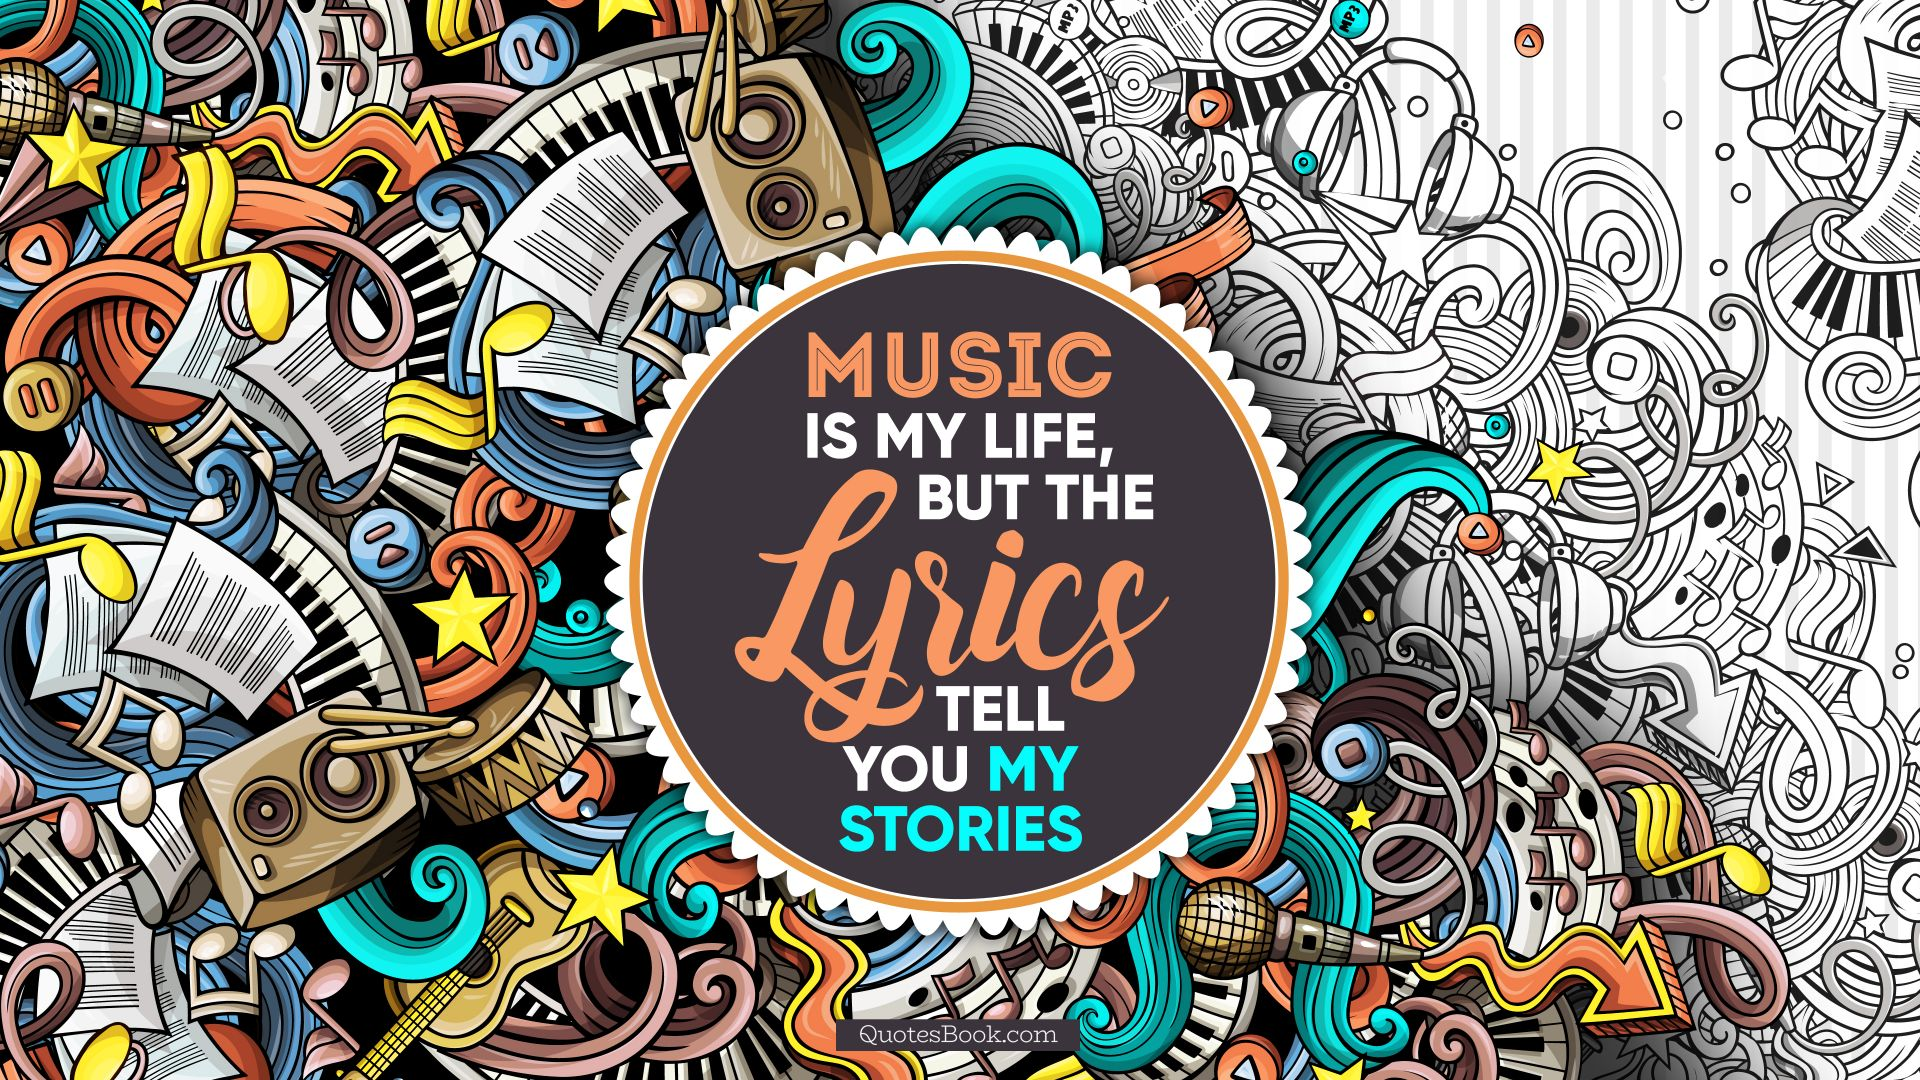 Music is my life, but the lyrics tell you my stories